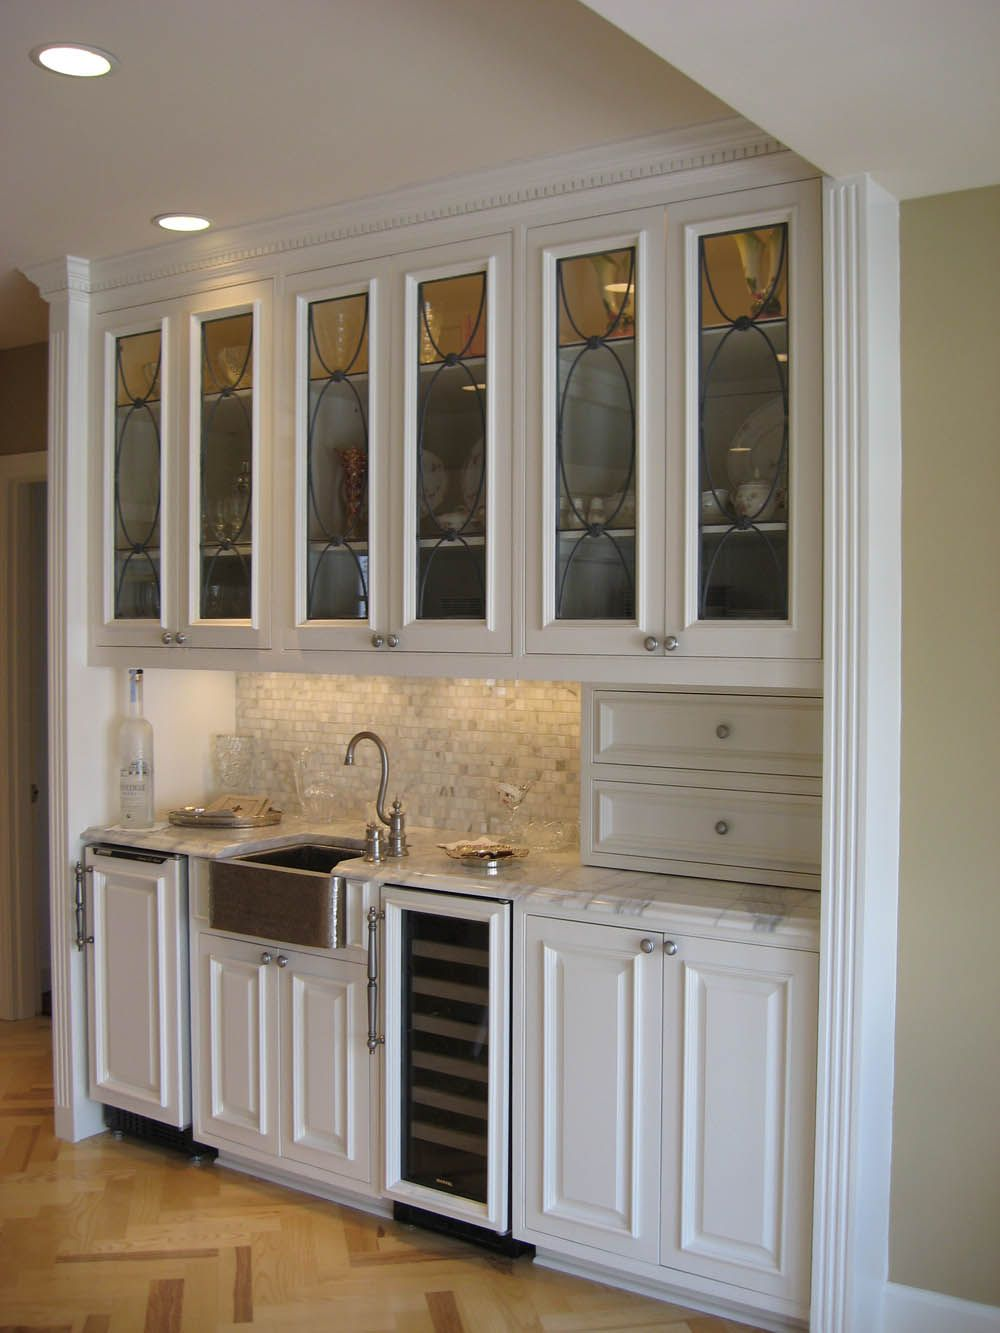 Custom Wet Bar I Love The Baby Size Farmhouse Sink And The Glass Detailing On The Cabinets